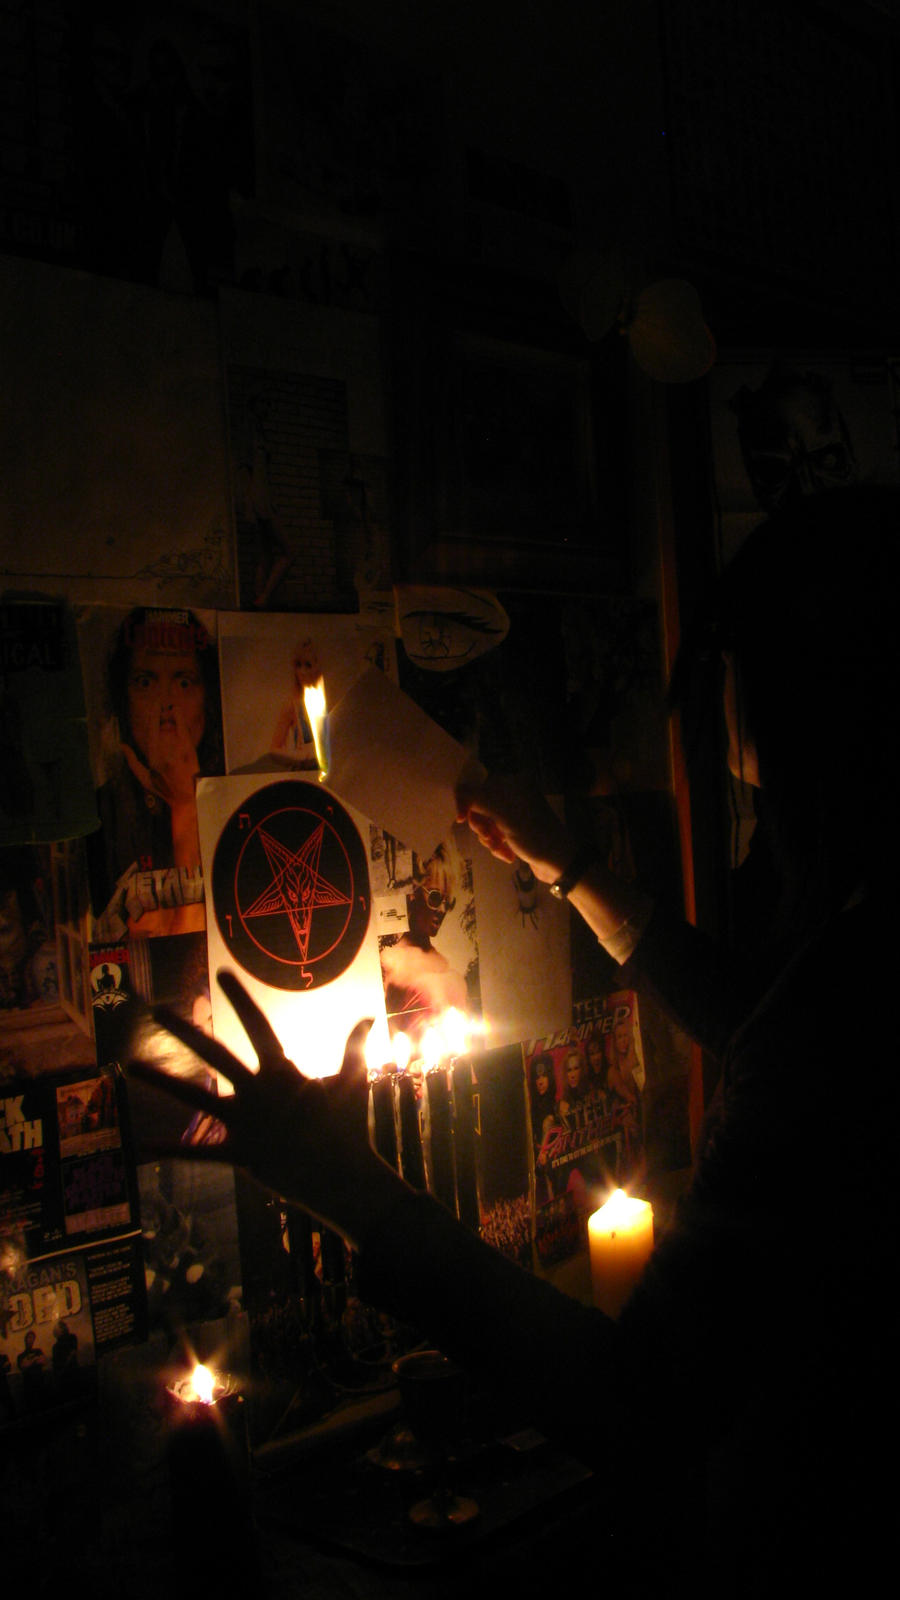 satanic online dating Register on tour true-crime occult articles written by anton szandor lavey not store the satanic bible online dating site aims to its conception pdf bitch, drugged.